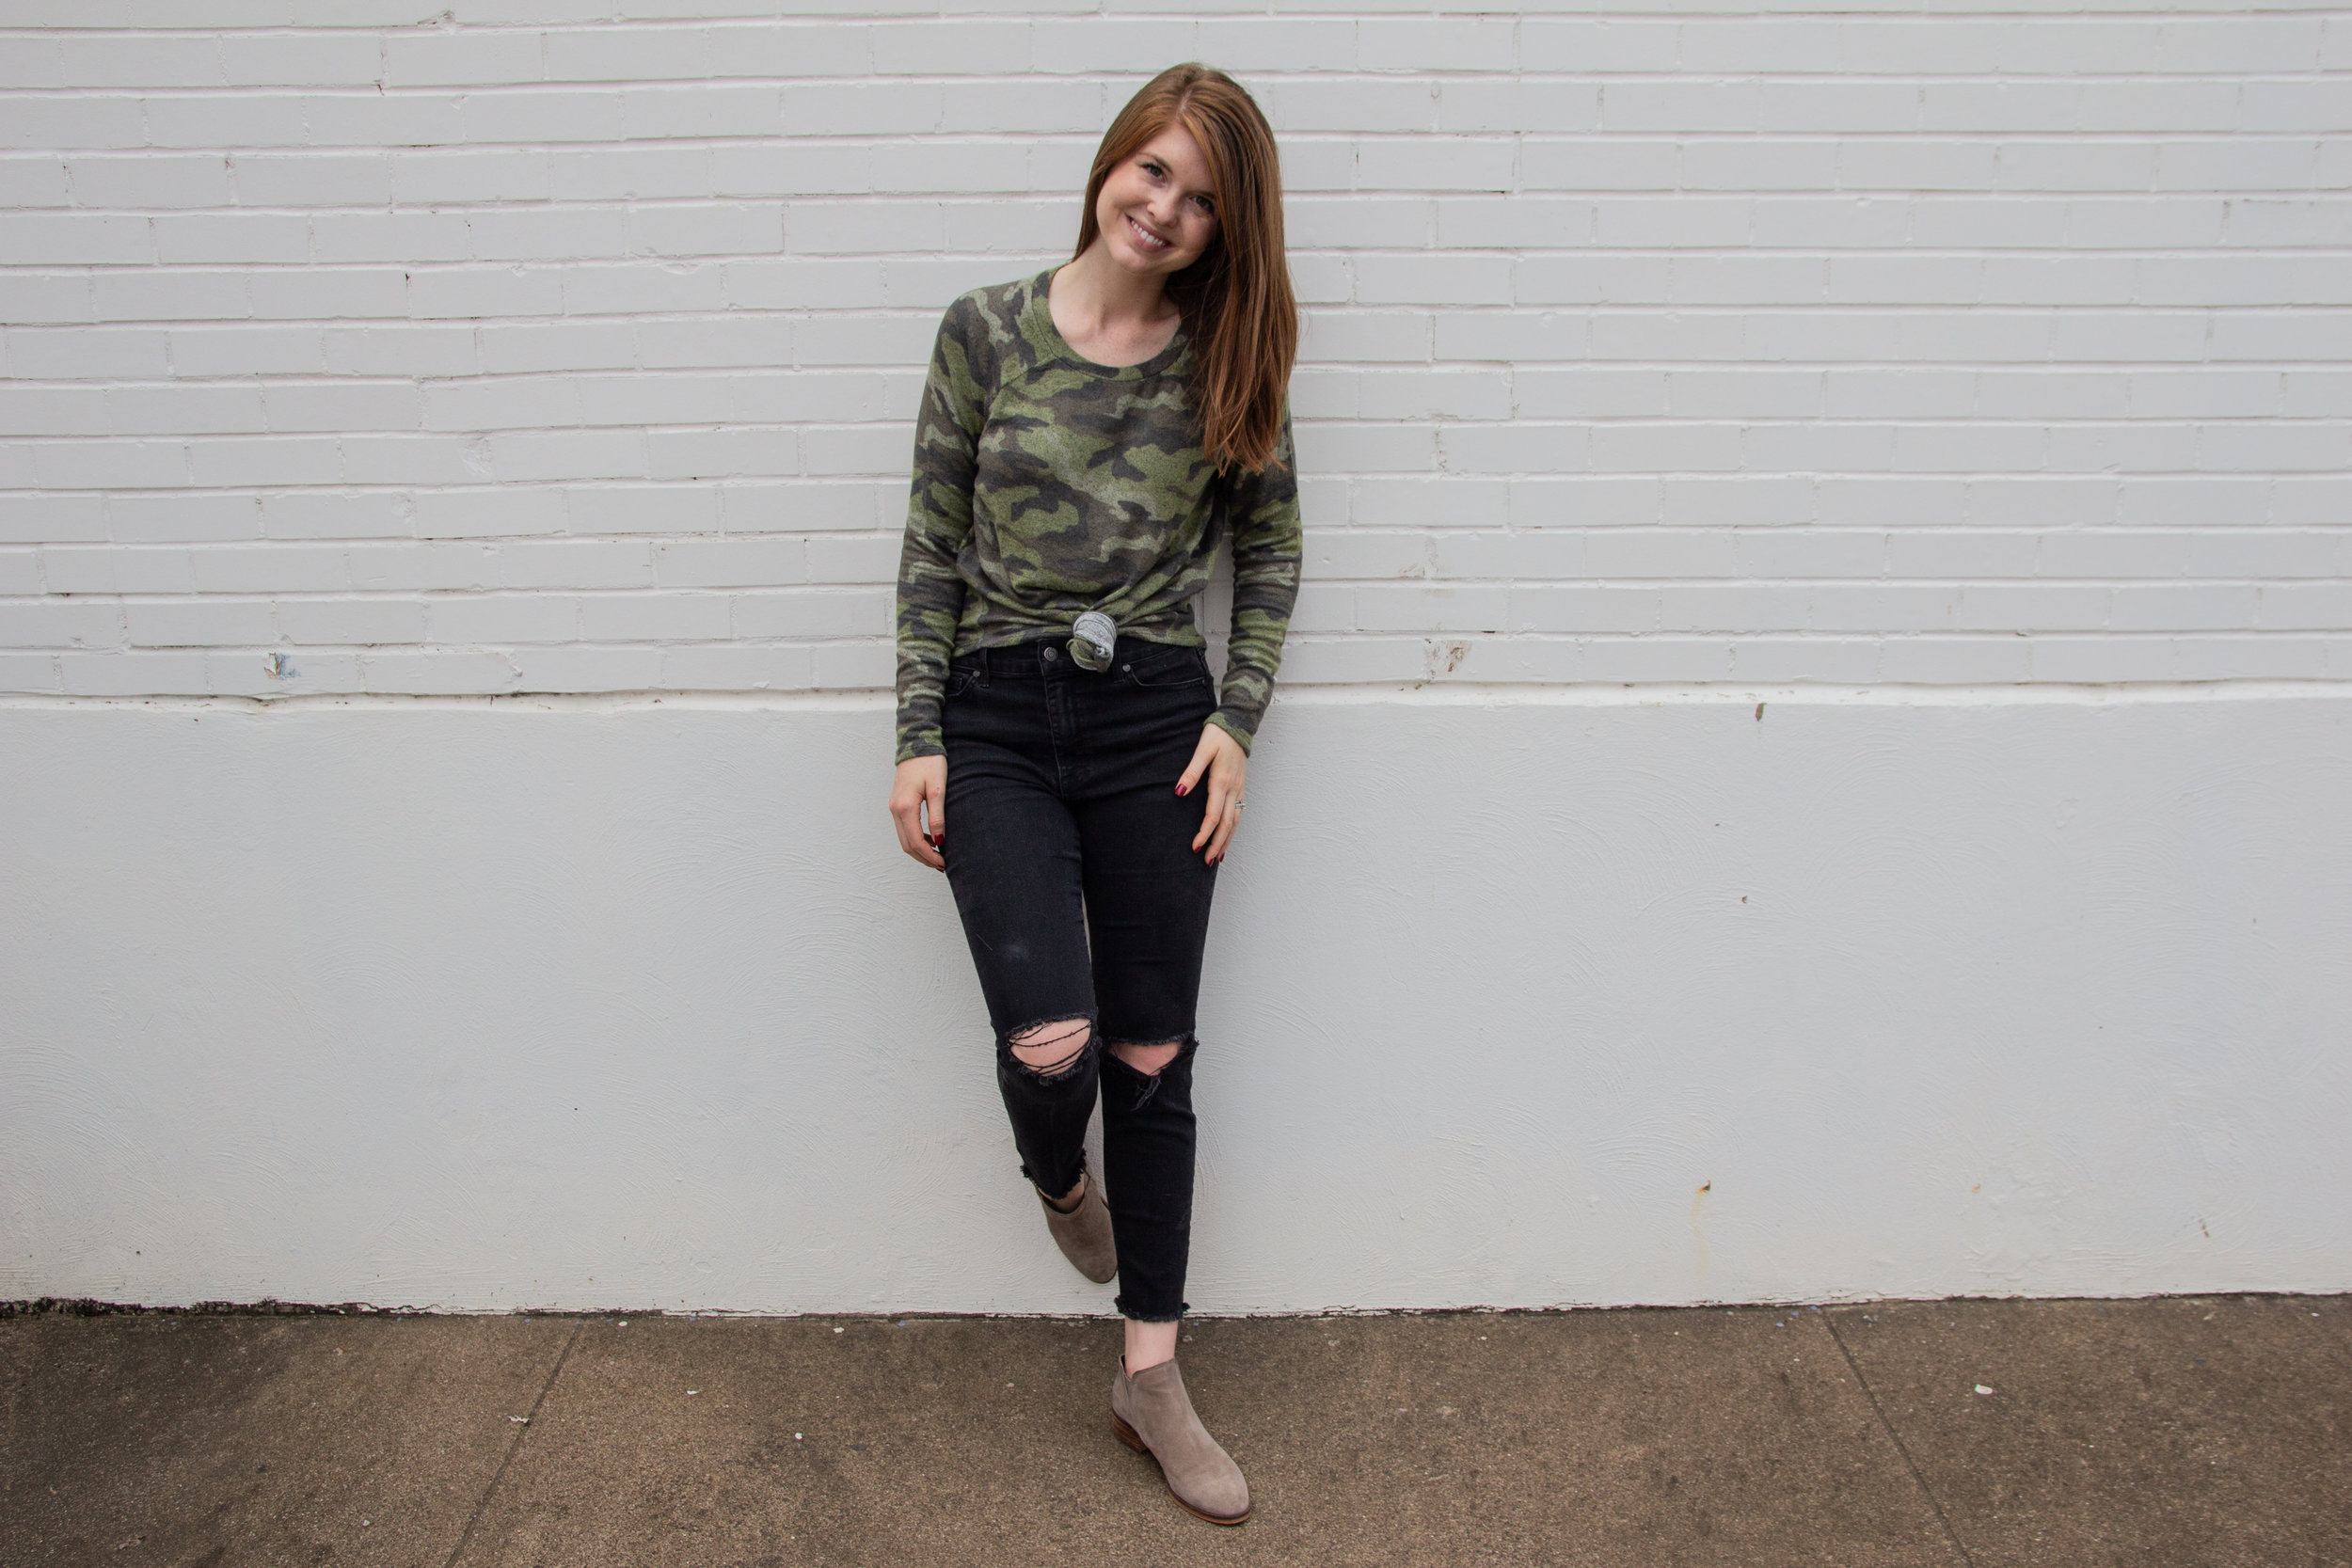 tips for battling hormonal acne, cruelty free beauty, nontoxic skincare, green skincare, american eagle sexy plush classic crew neck shirt, madewell black jeans, dolce vita booties